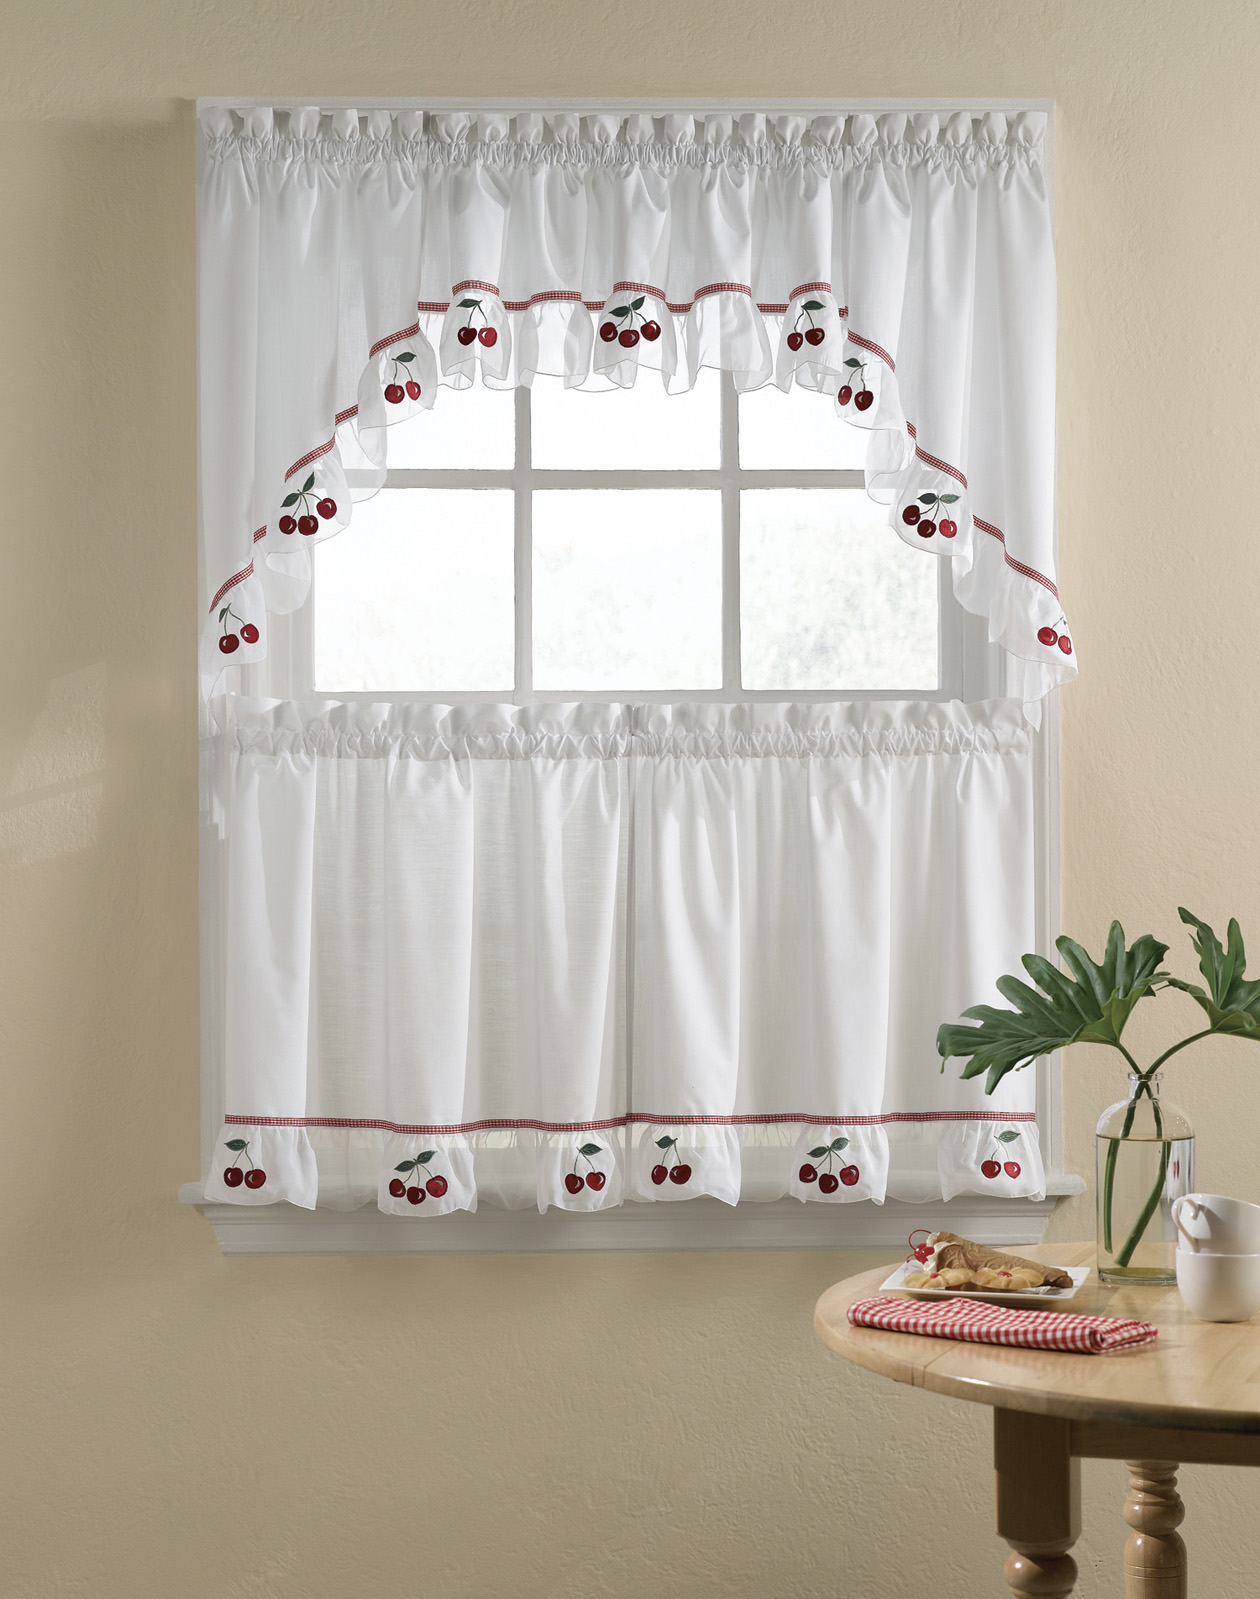 A Bunch Of Inspiring Kitchen Curtains Ideas For Getting The Fresh Yet Good Looking Kitchen Artmakehome